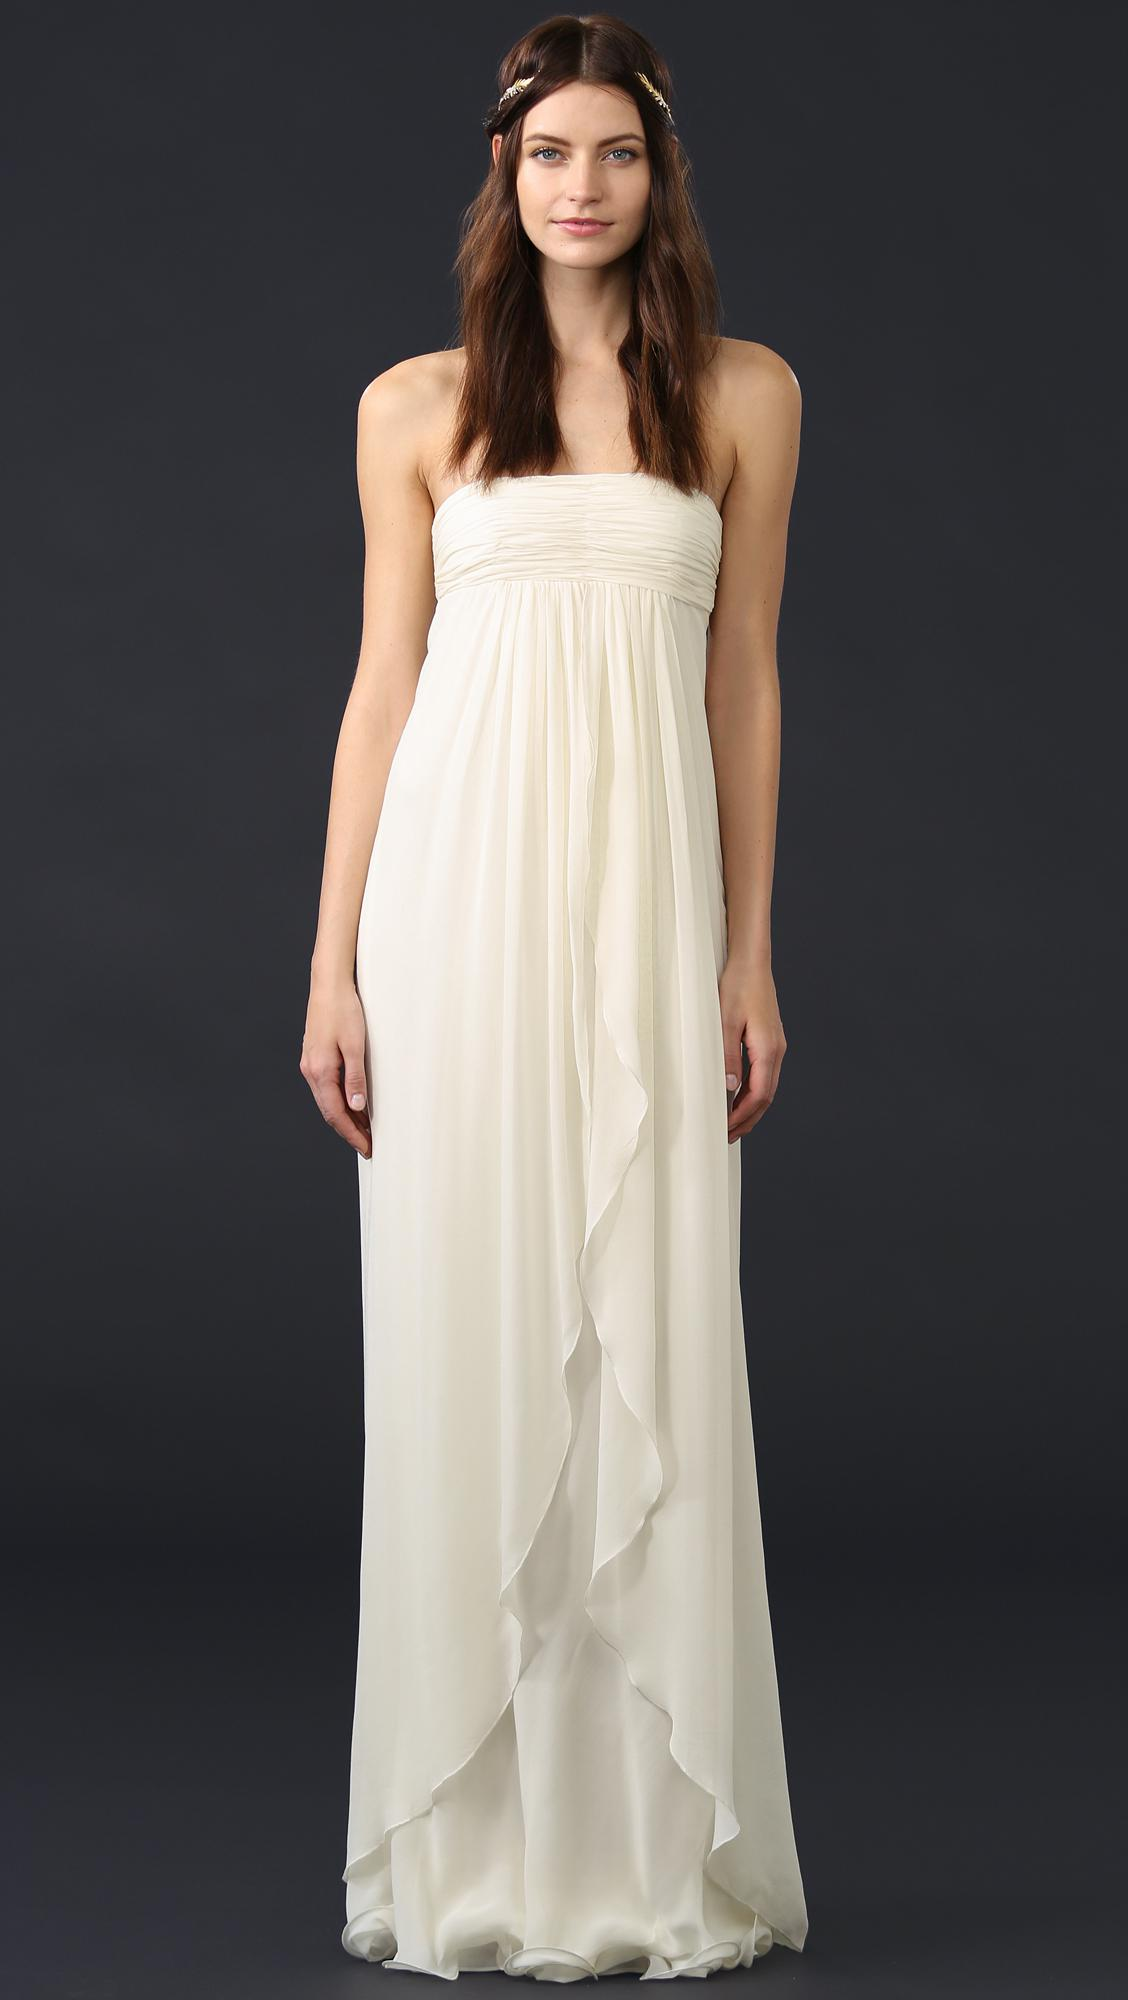 Lyst - Rachel Zoe Elle Strapless Empire Gown in White - Save 60.0%